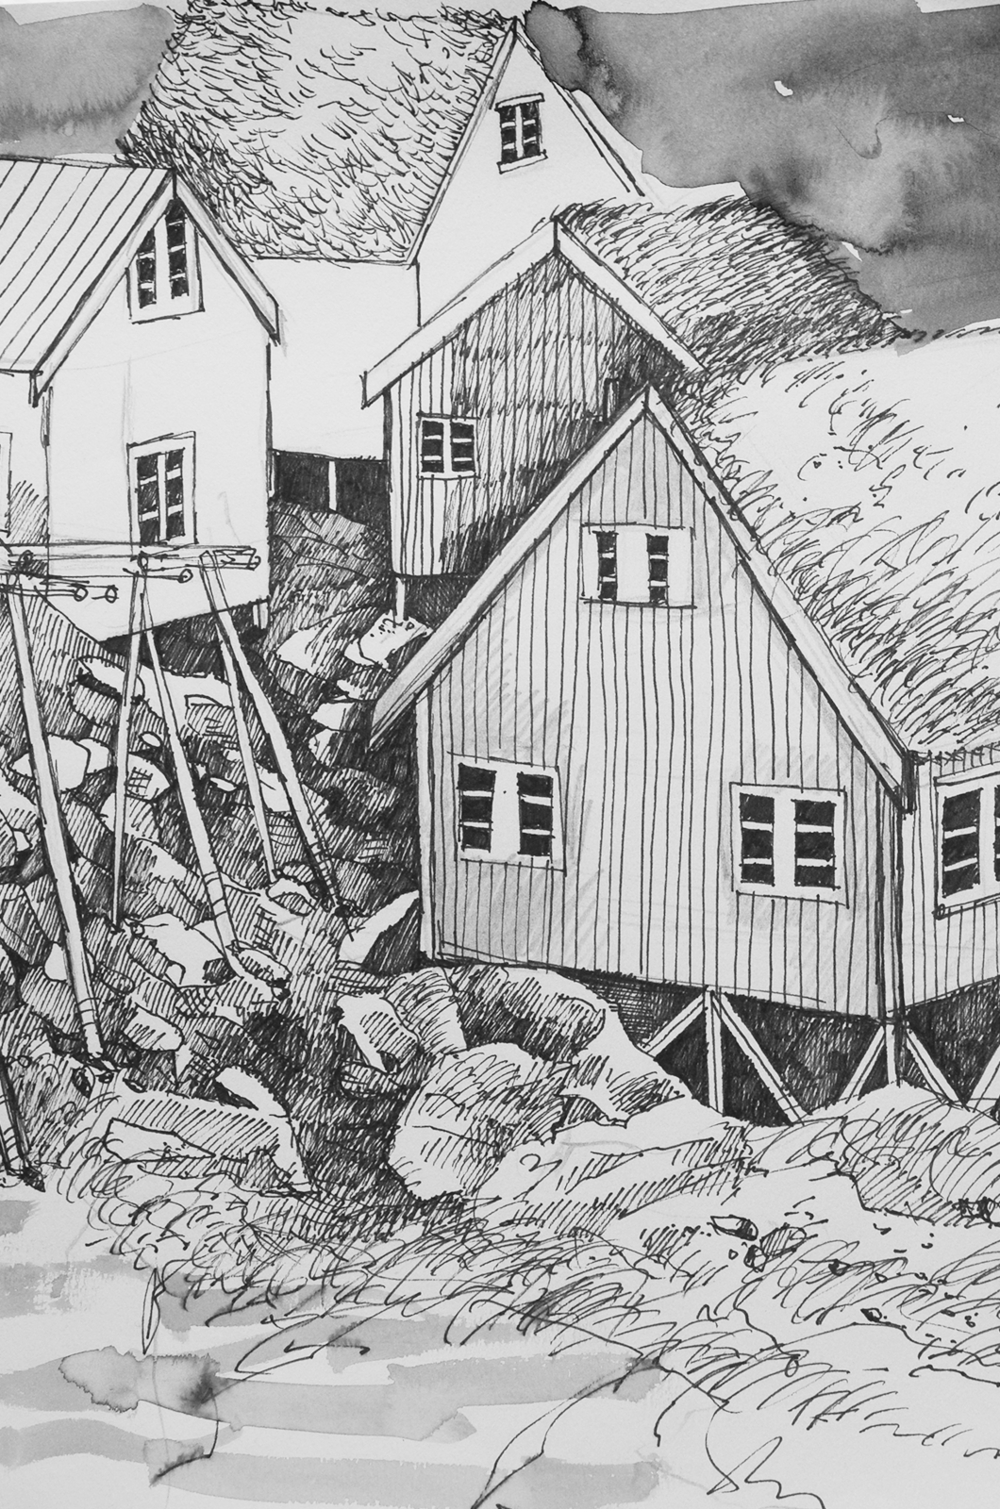 Swim-Wild-Illustrations---Houses-in-Reine+(1) - Copy.png